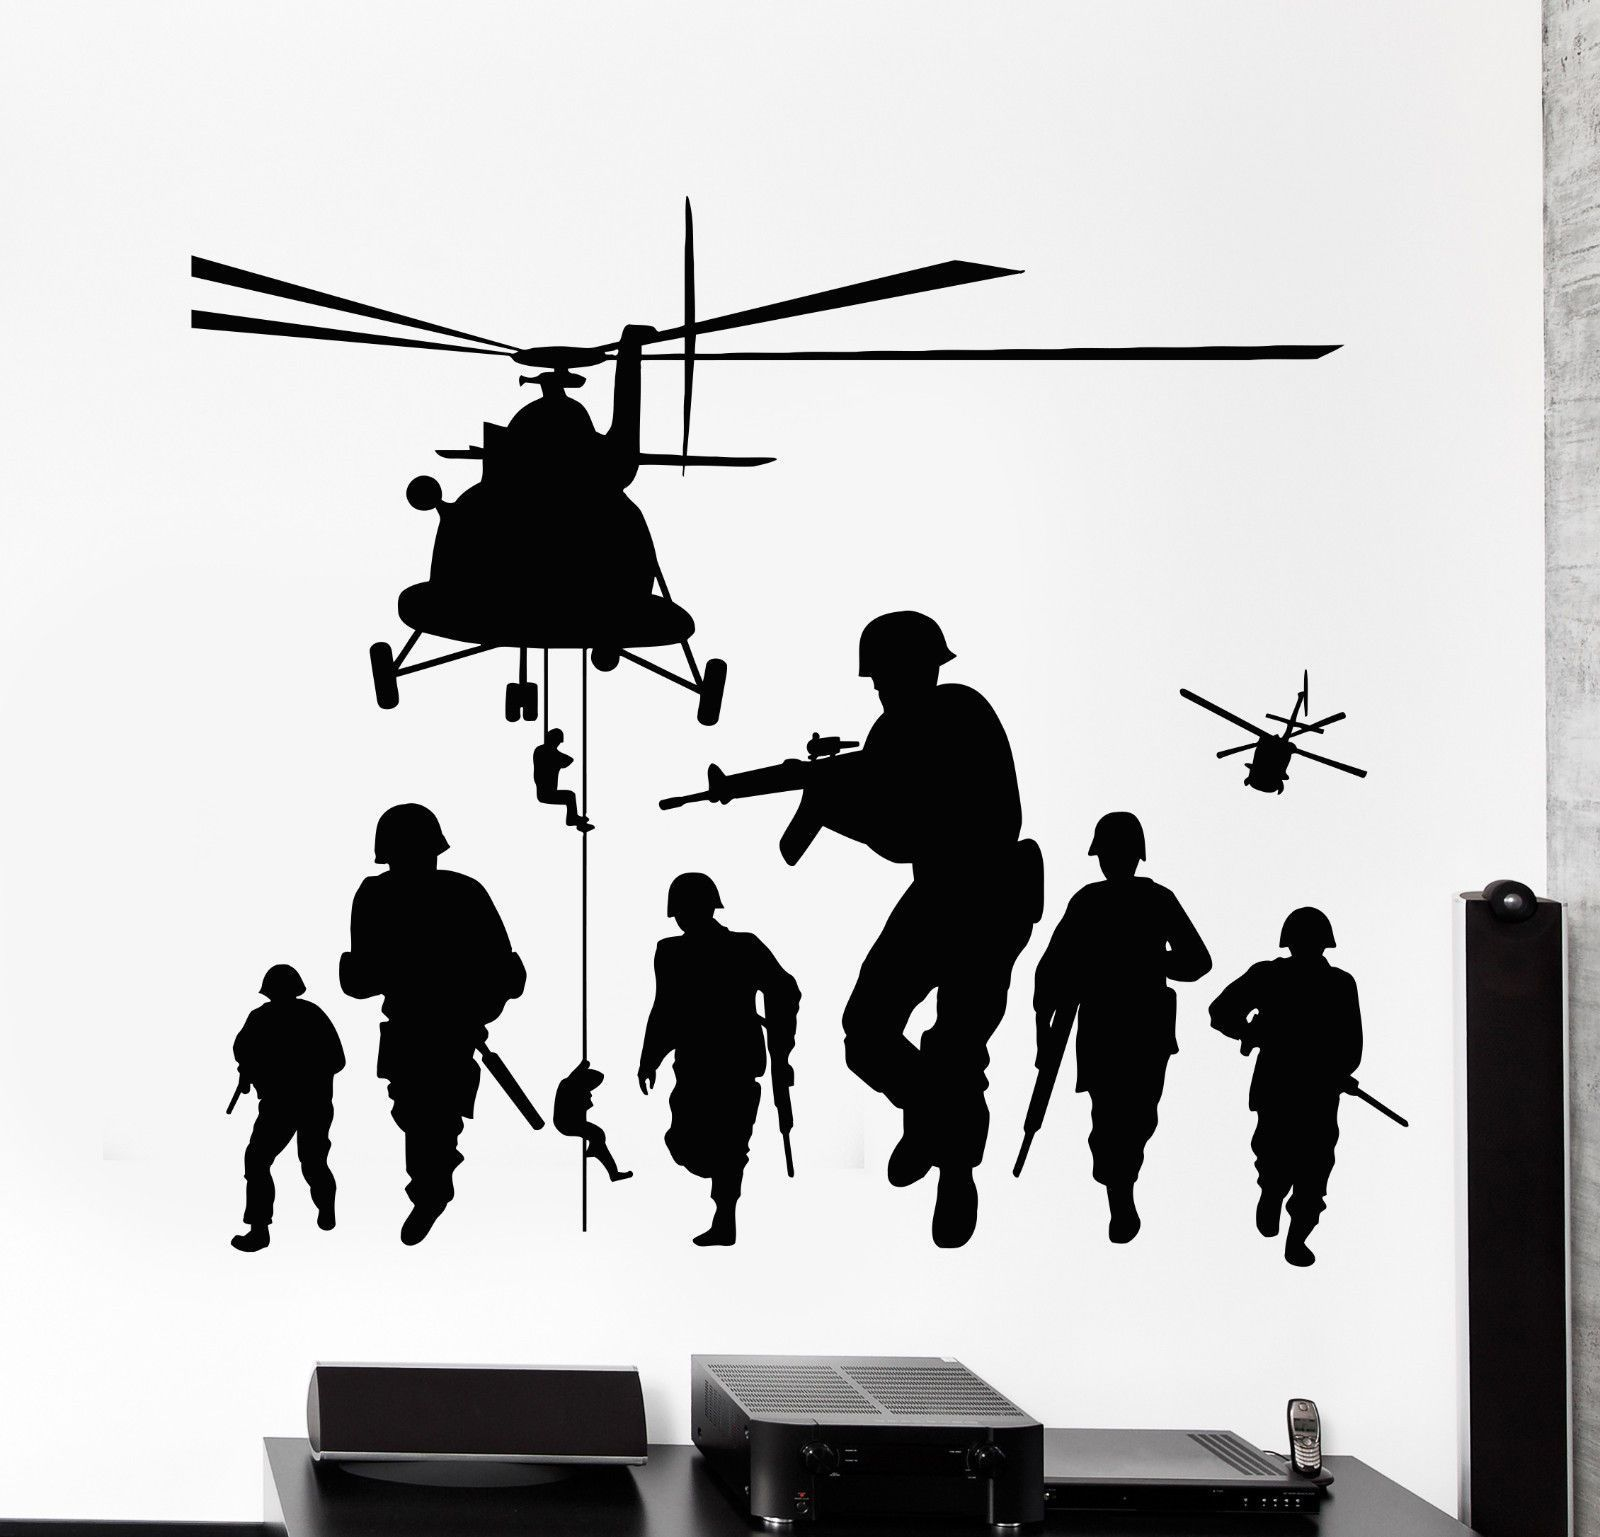 Vinyl Wall Decal Soldiers Patriot War Warrior Helicopter Stickers 1250ig Army Drawing Vinyl Wall Decals Army Poster [ 1537 x 1600 Pixel ]